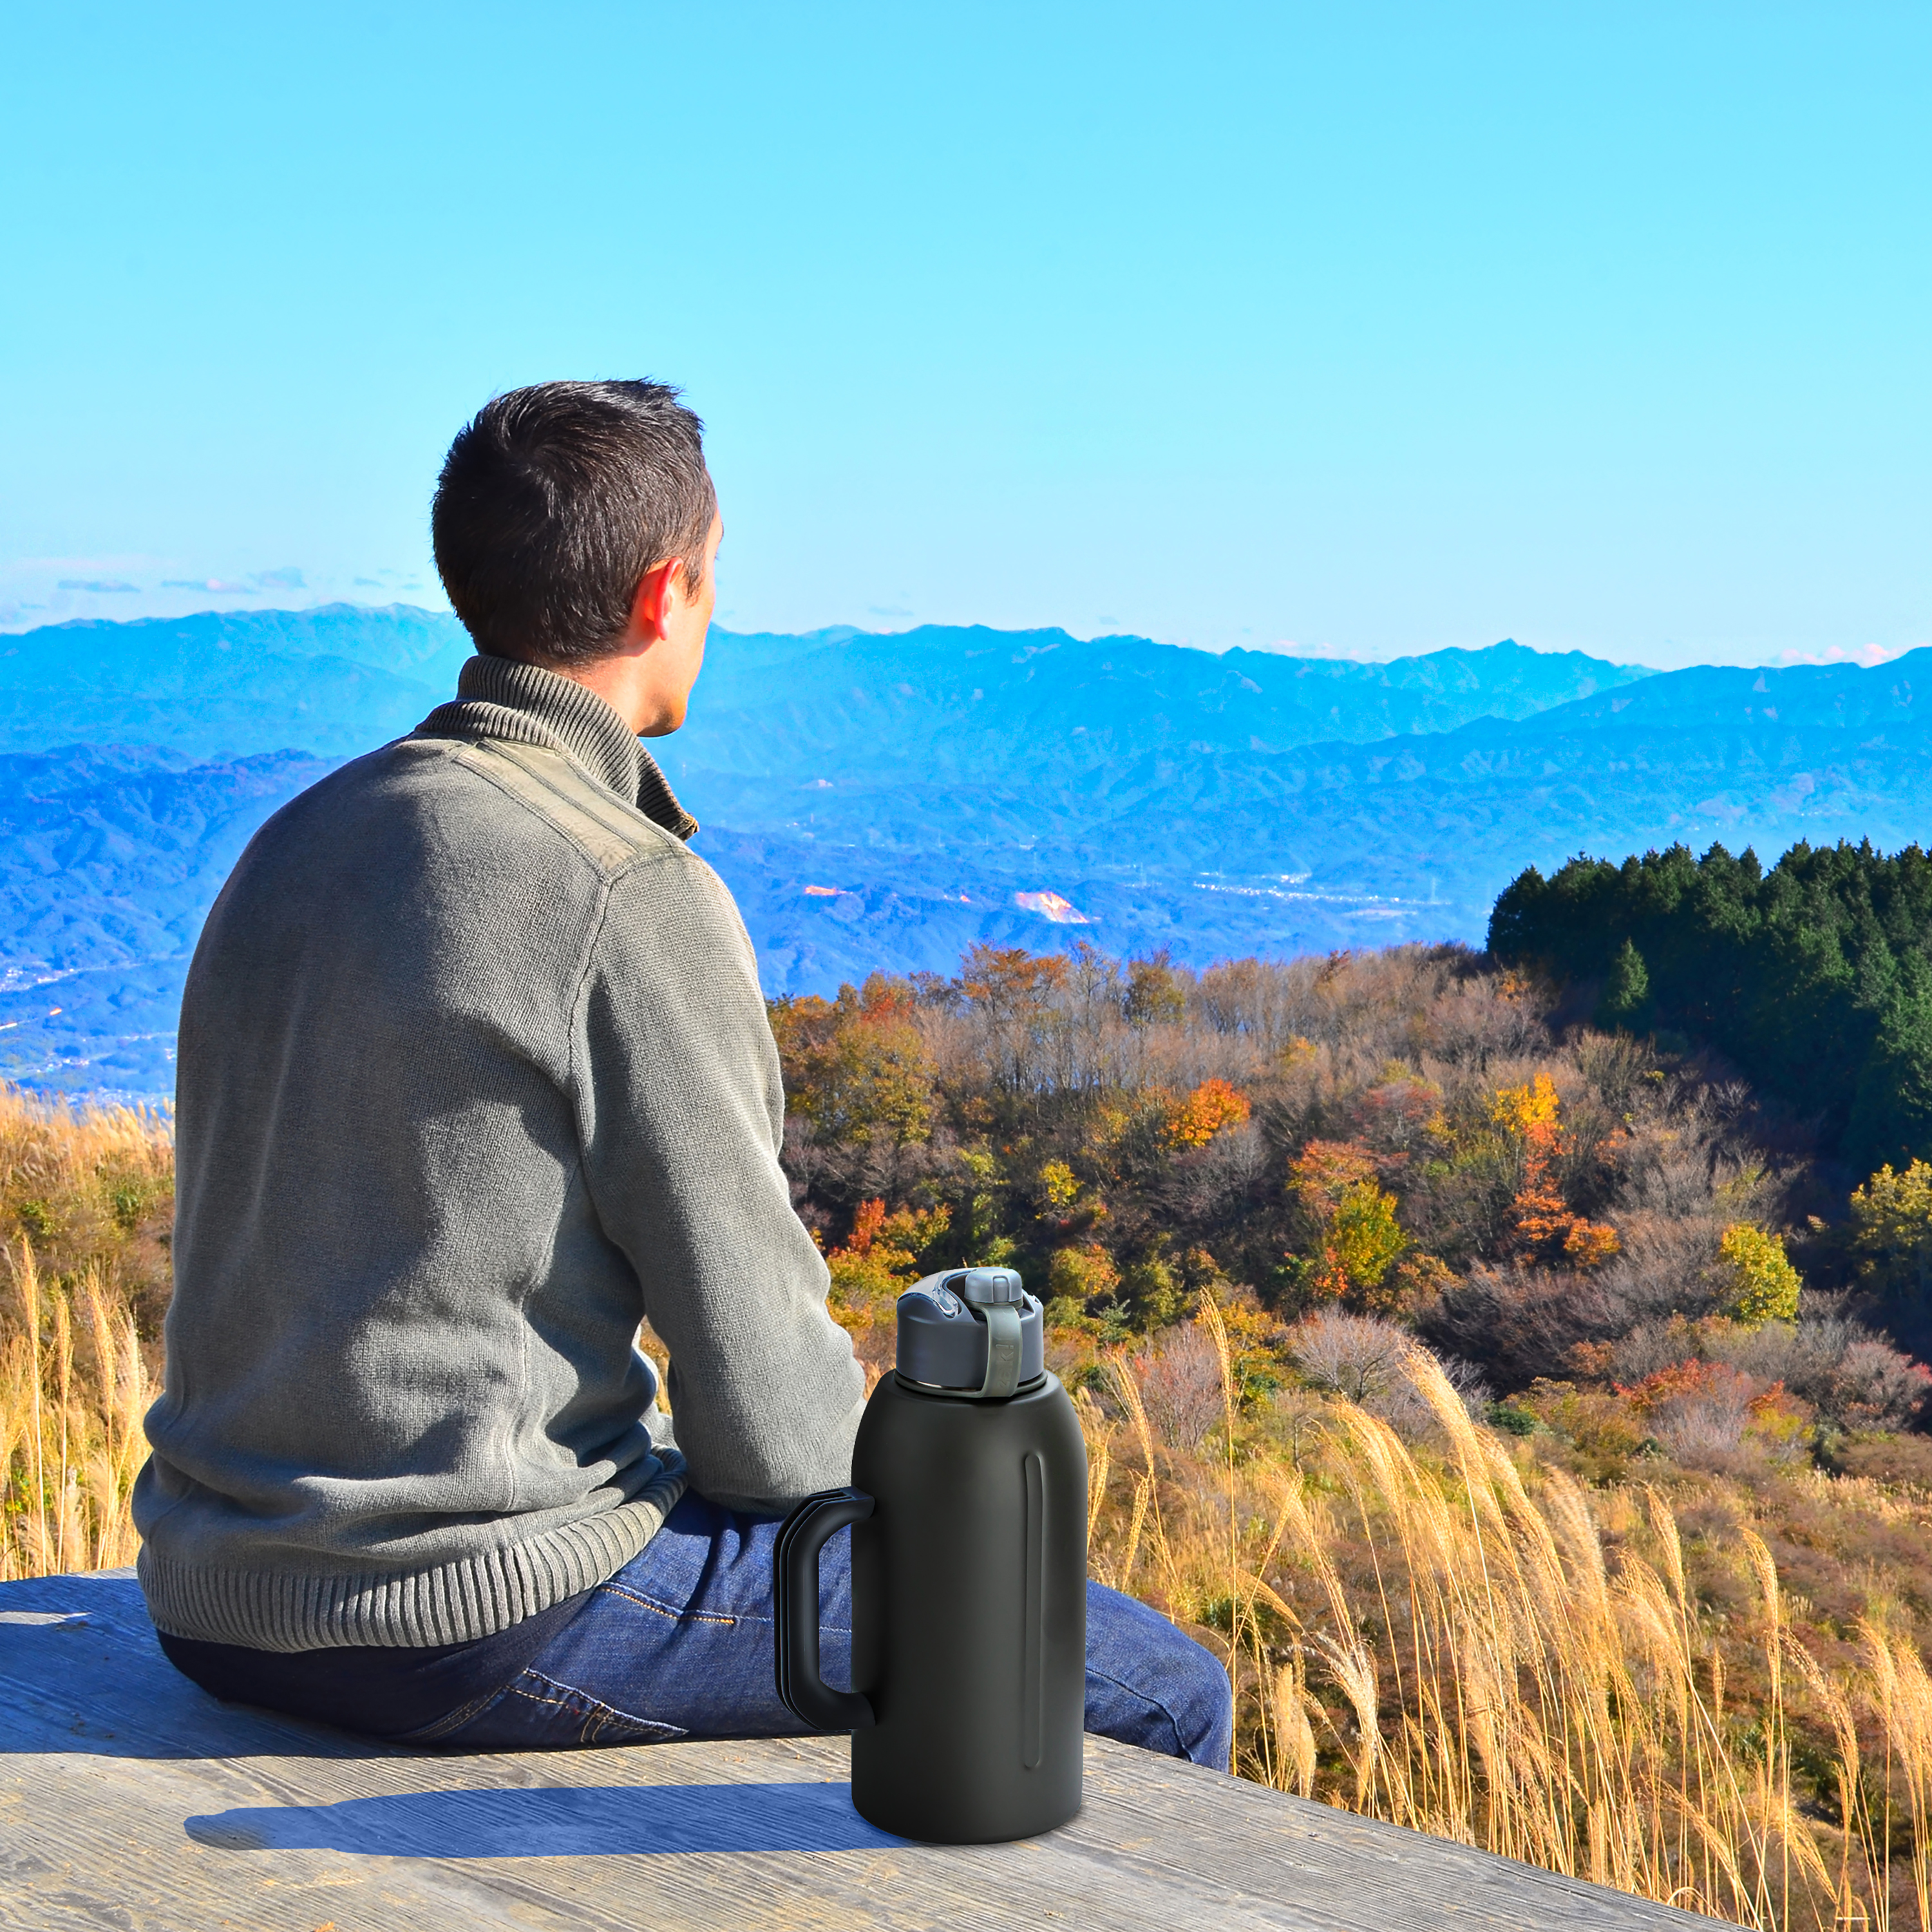 Genesis bottle with scenic view